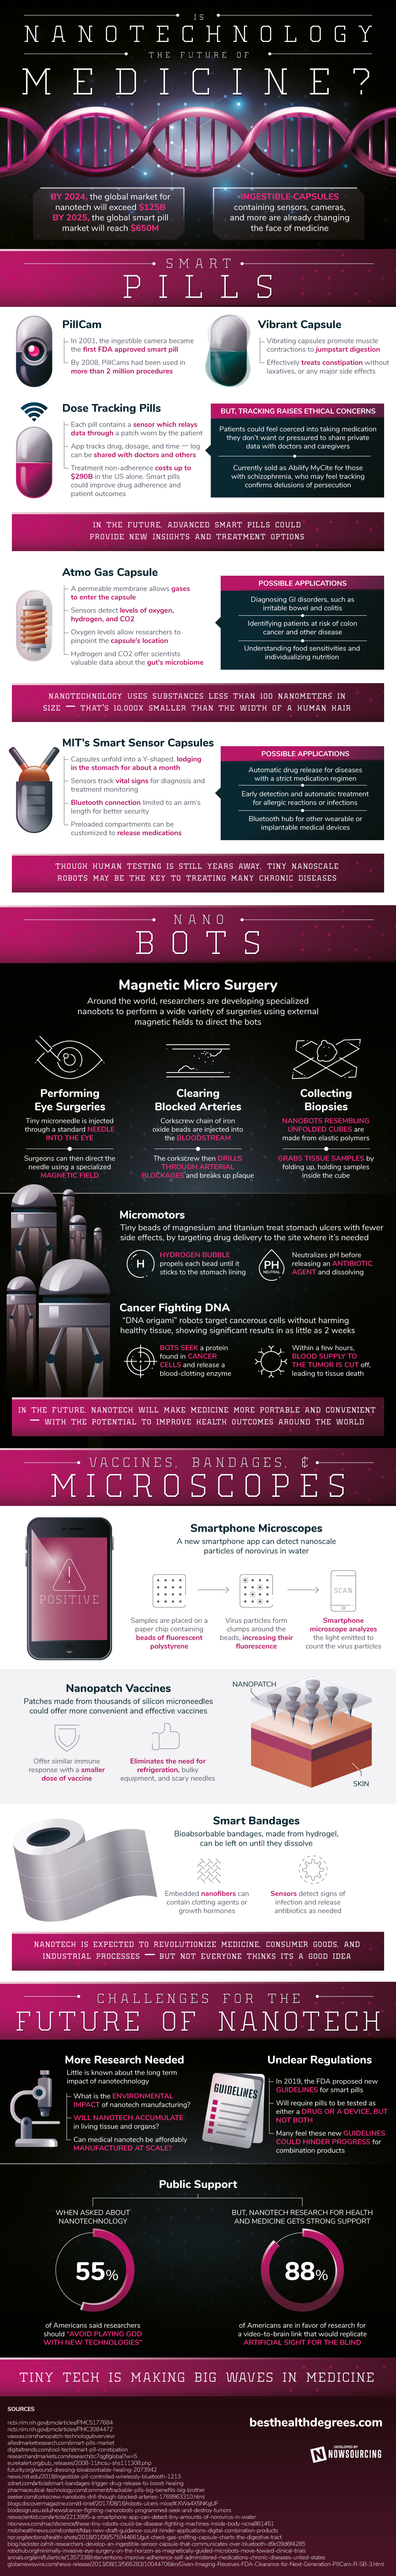 Is Nanotechnology The Future Of Medicine? - Infographic